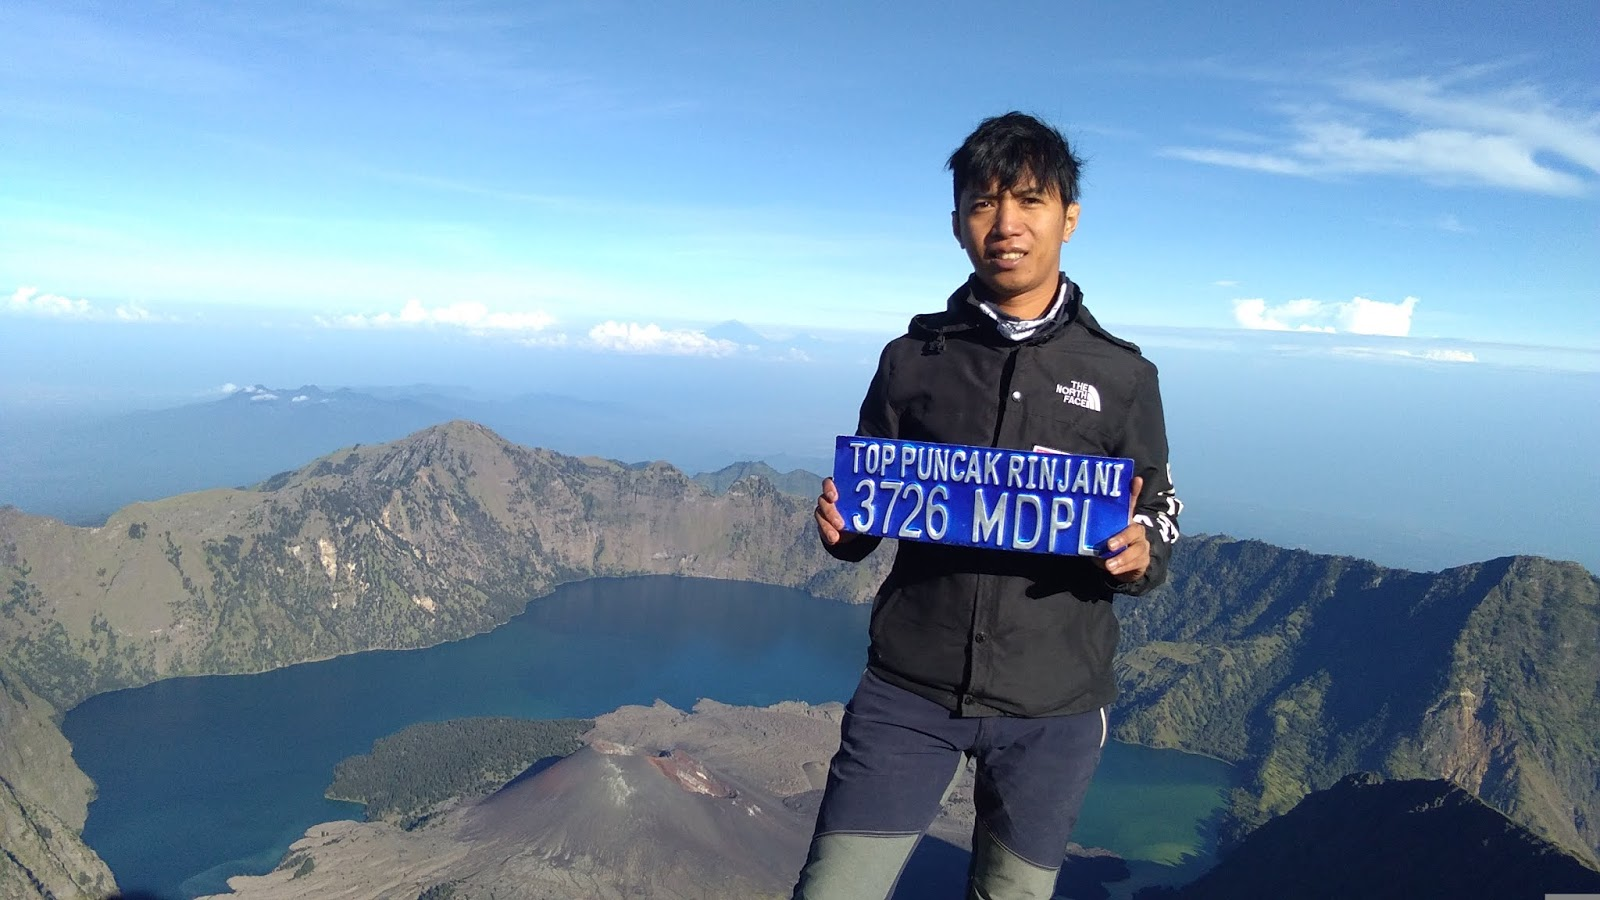 7 Summit Mountain Indonesia